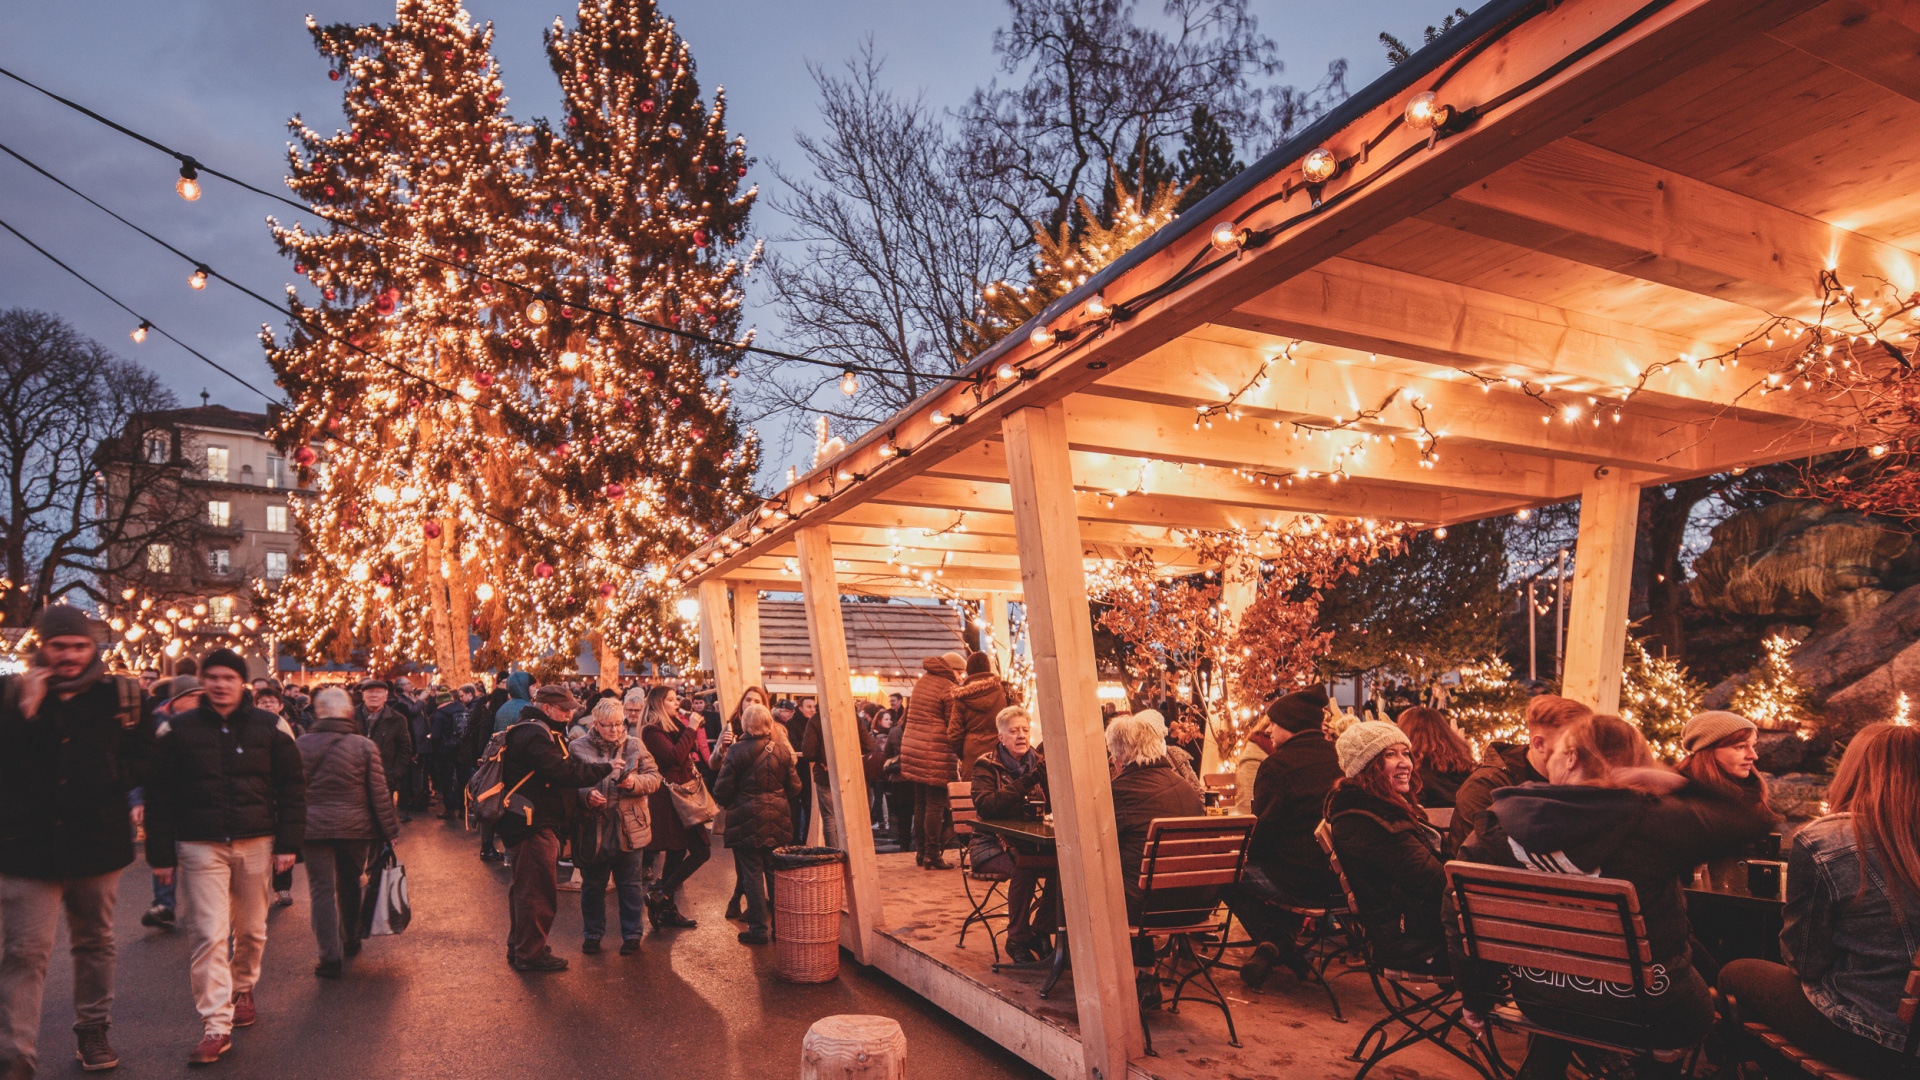 Bern Christmas Market 2020 Christmas Markets in Bern   Bern Welcome